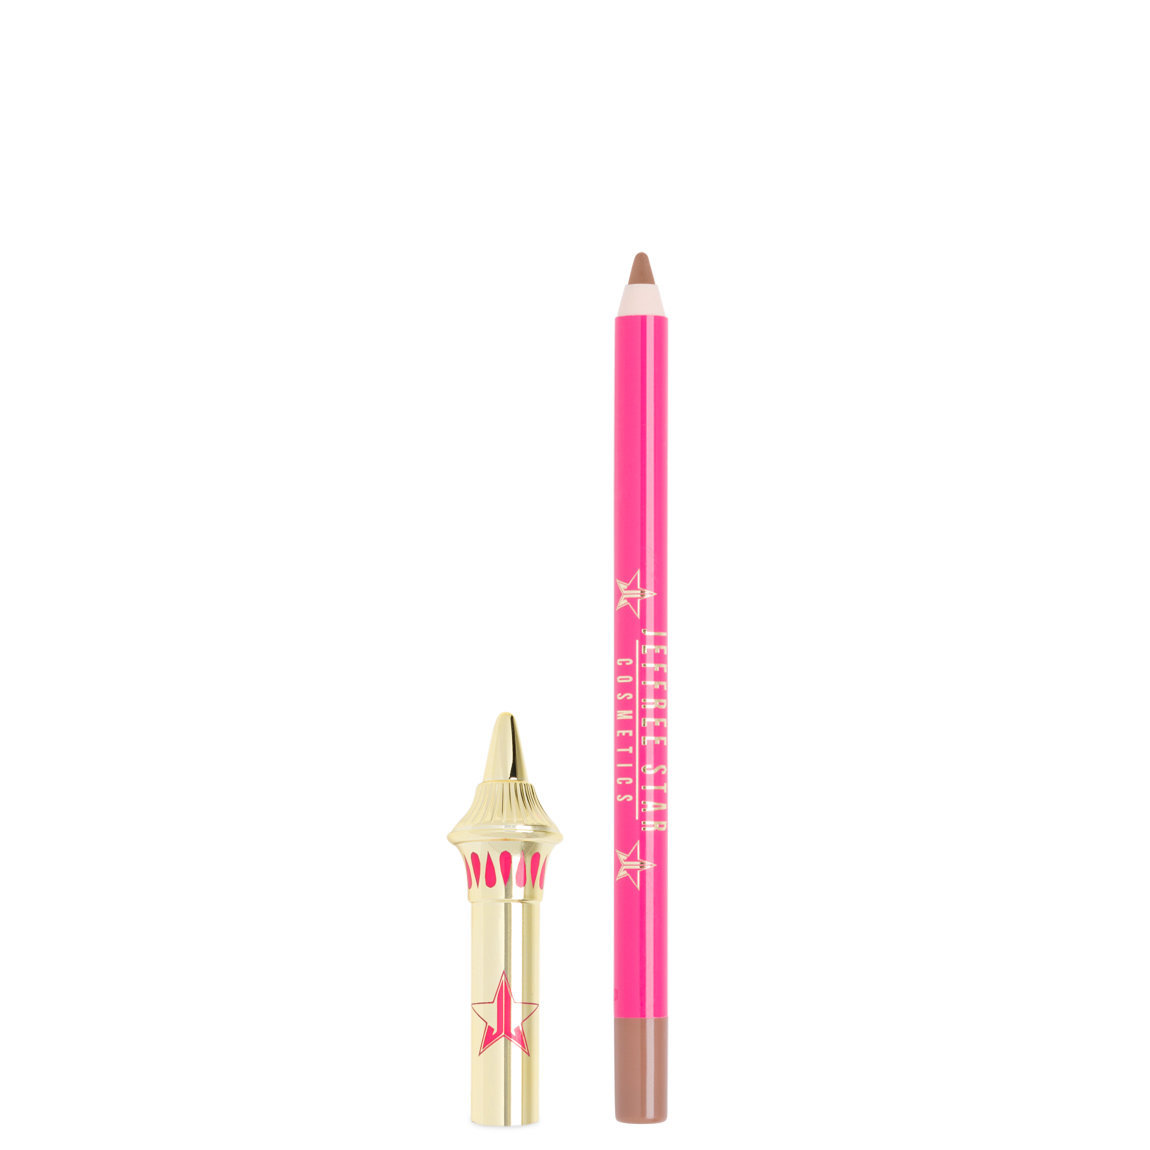 Jeffree Star Cosmetics Velour Lip Liner Posh Spice alternative view 1.